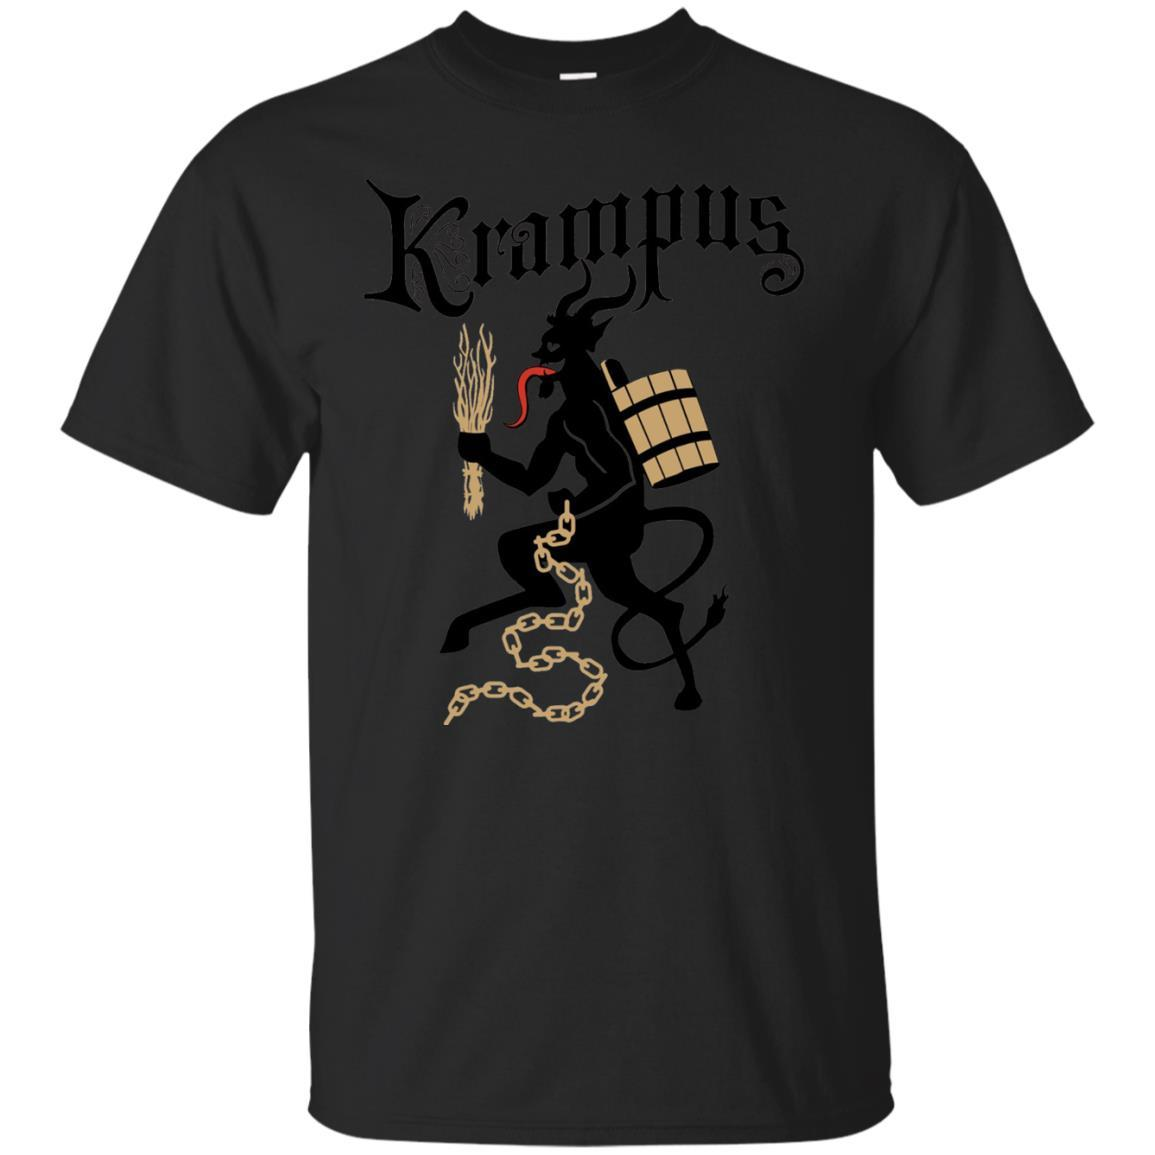 Holiday Krampus T-shirt